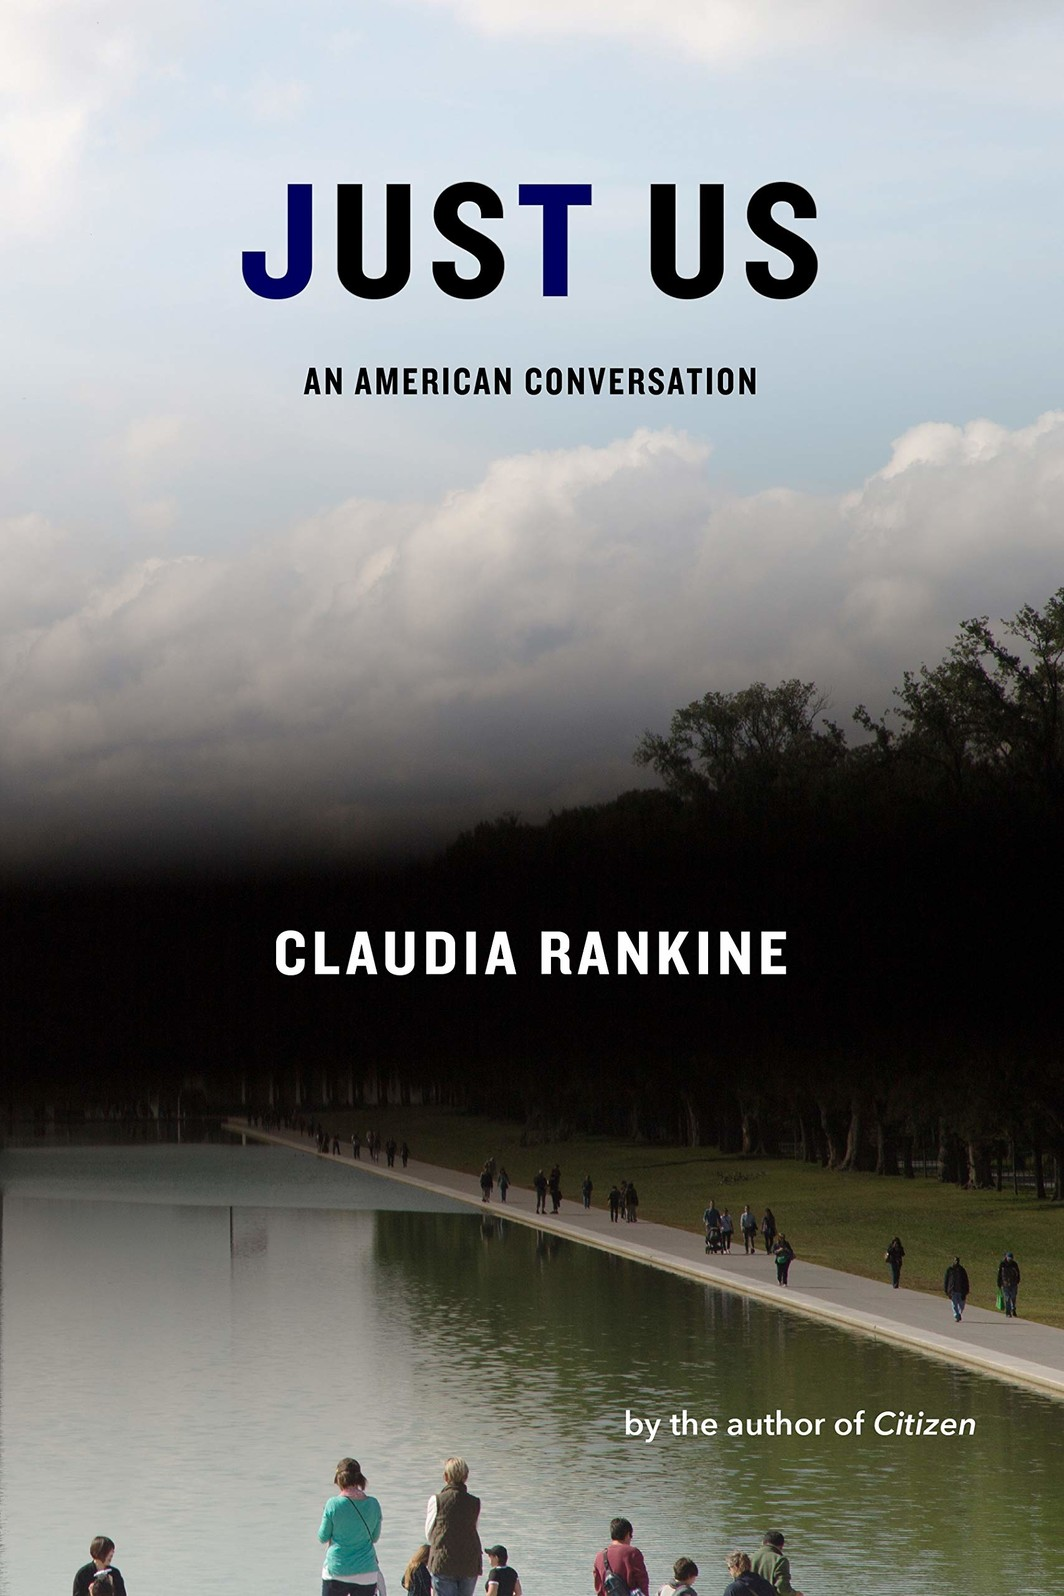 The cover of Just Us: An American Conversation